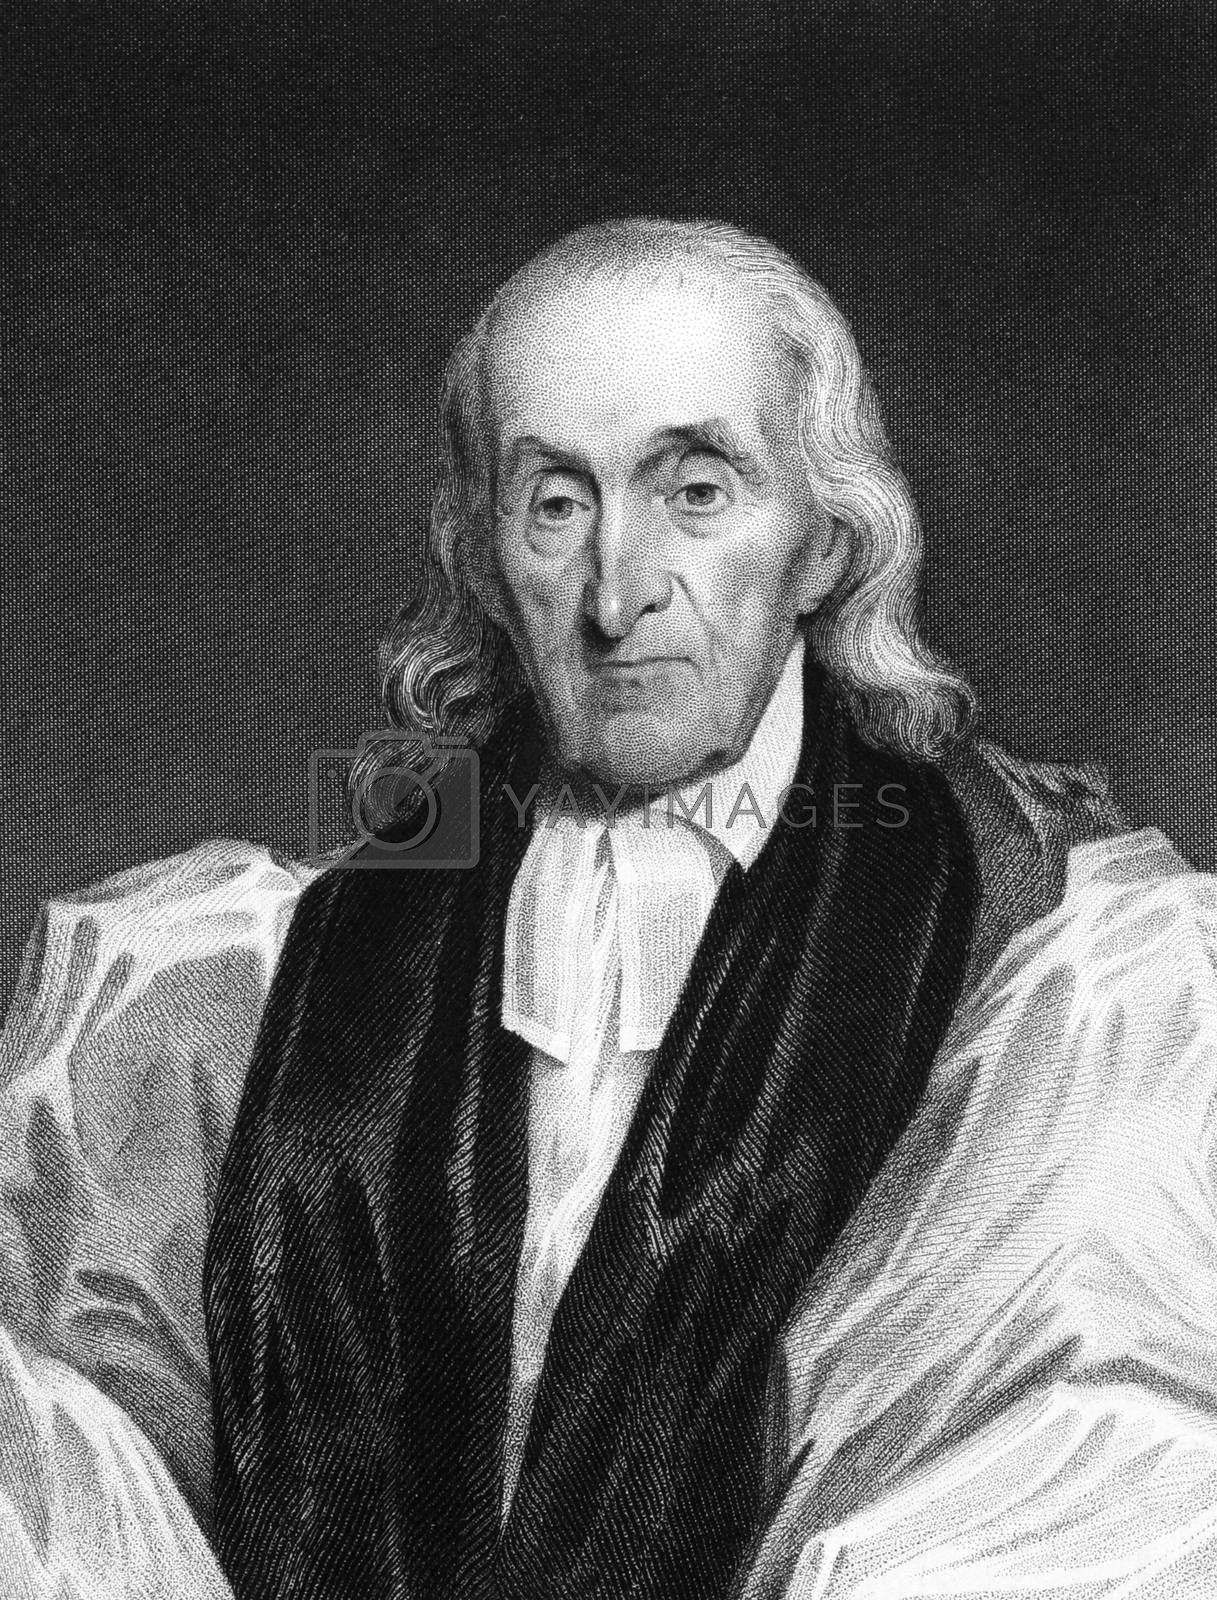 William White (1748-1836) on engraving from 1834. Bishop of Pennsylvania. Engraved by T.B Welch and published in ''National Portrait Gallery of Distinguished Americans'',USA,1834.